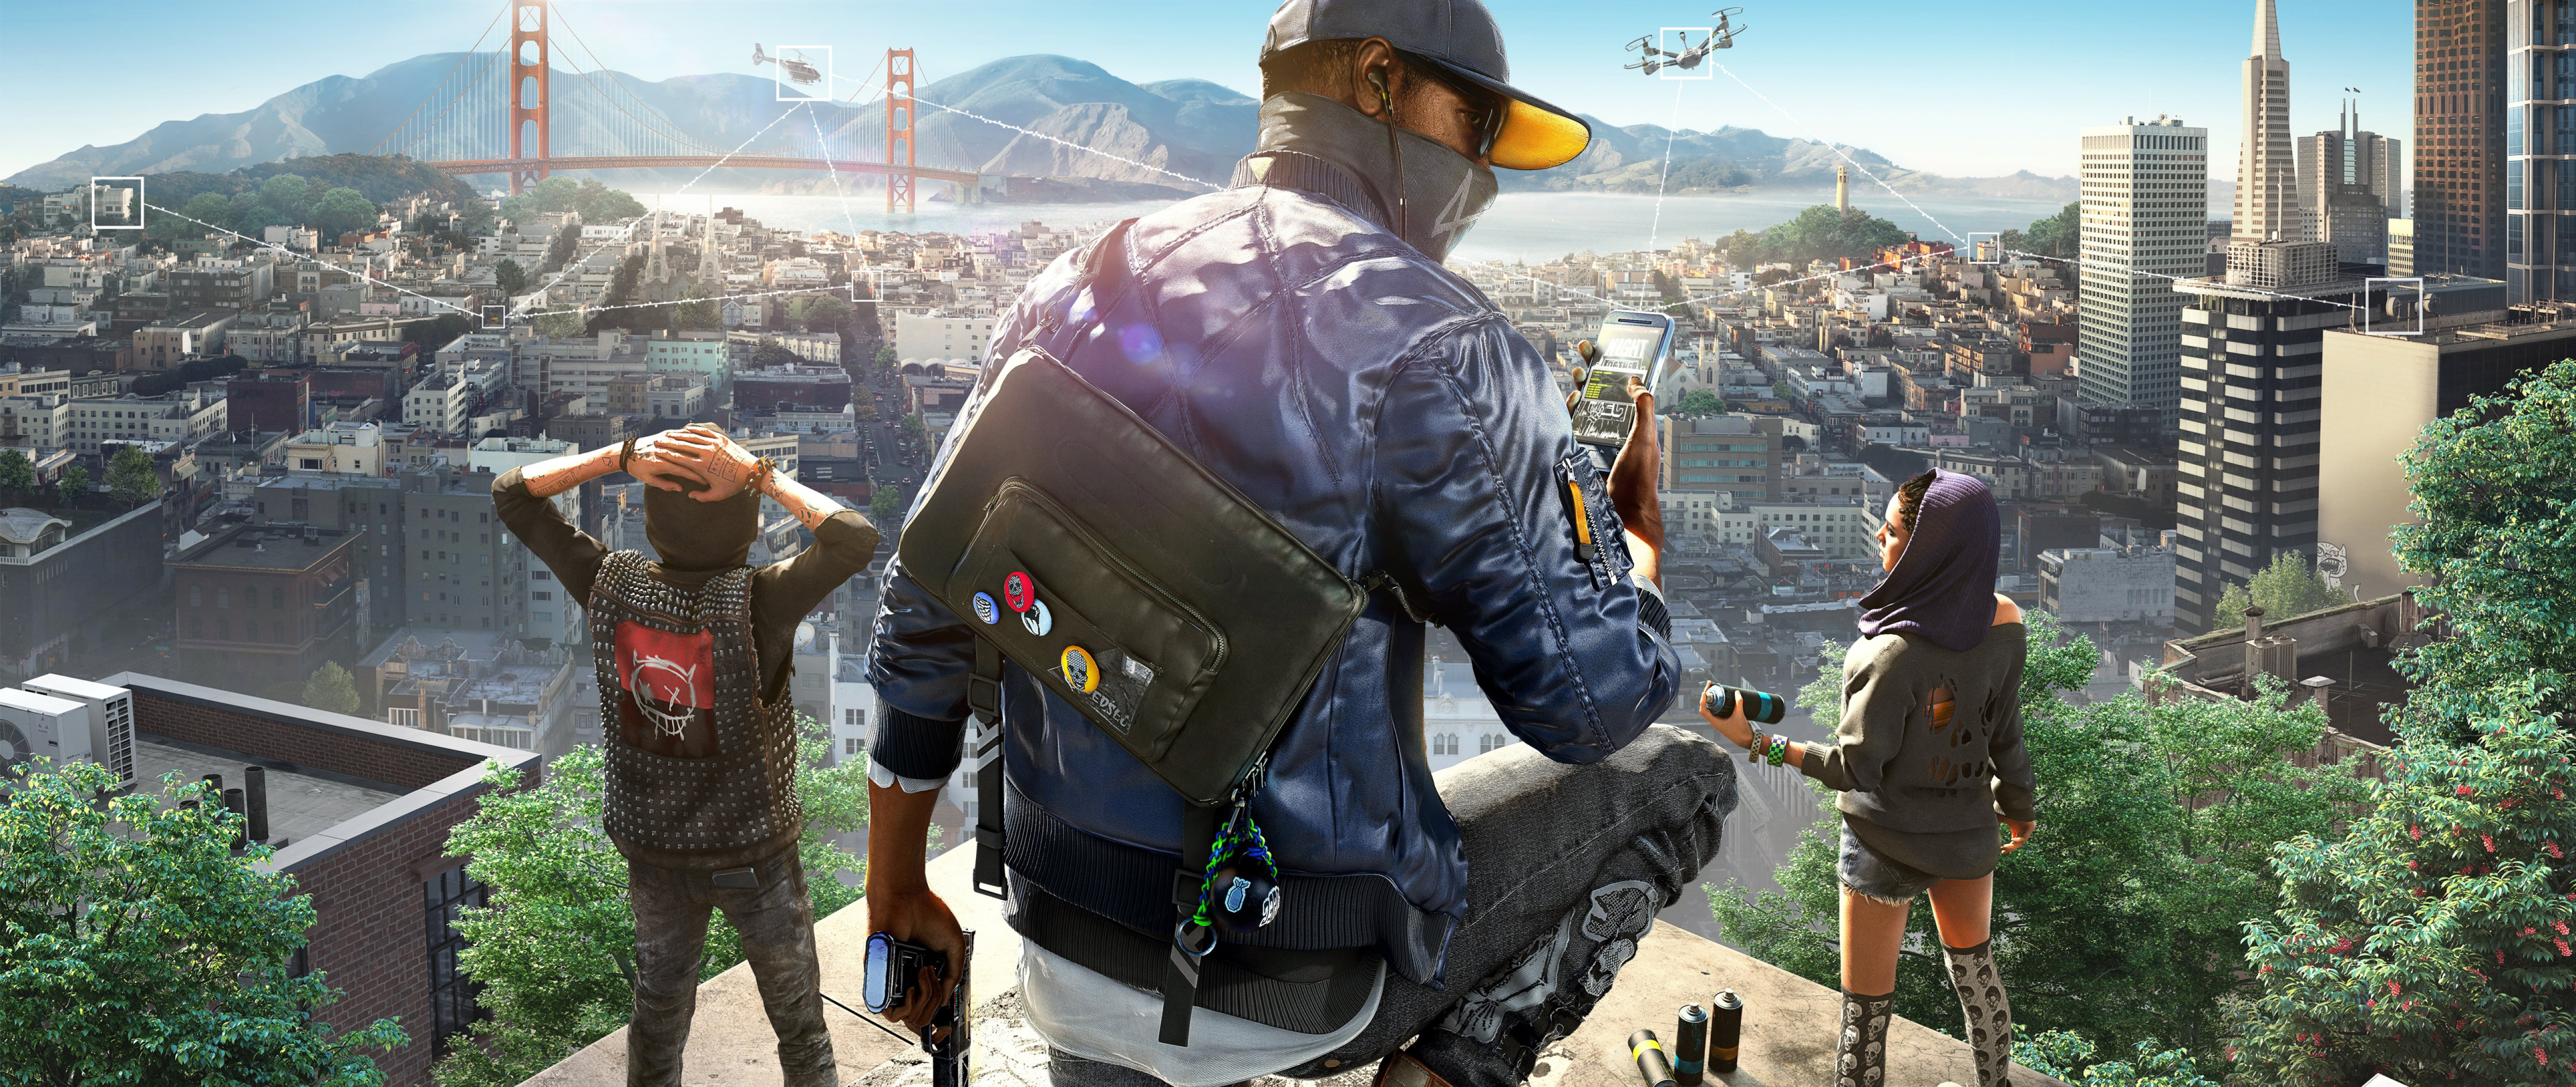 Watch Dogs 2 4k Hd Wallpaper For Desktop And Mobiles 4k